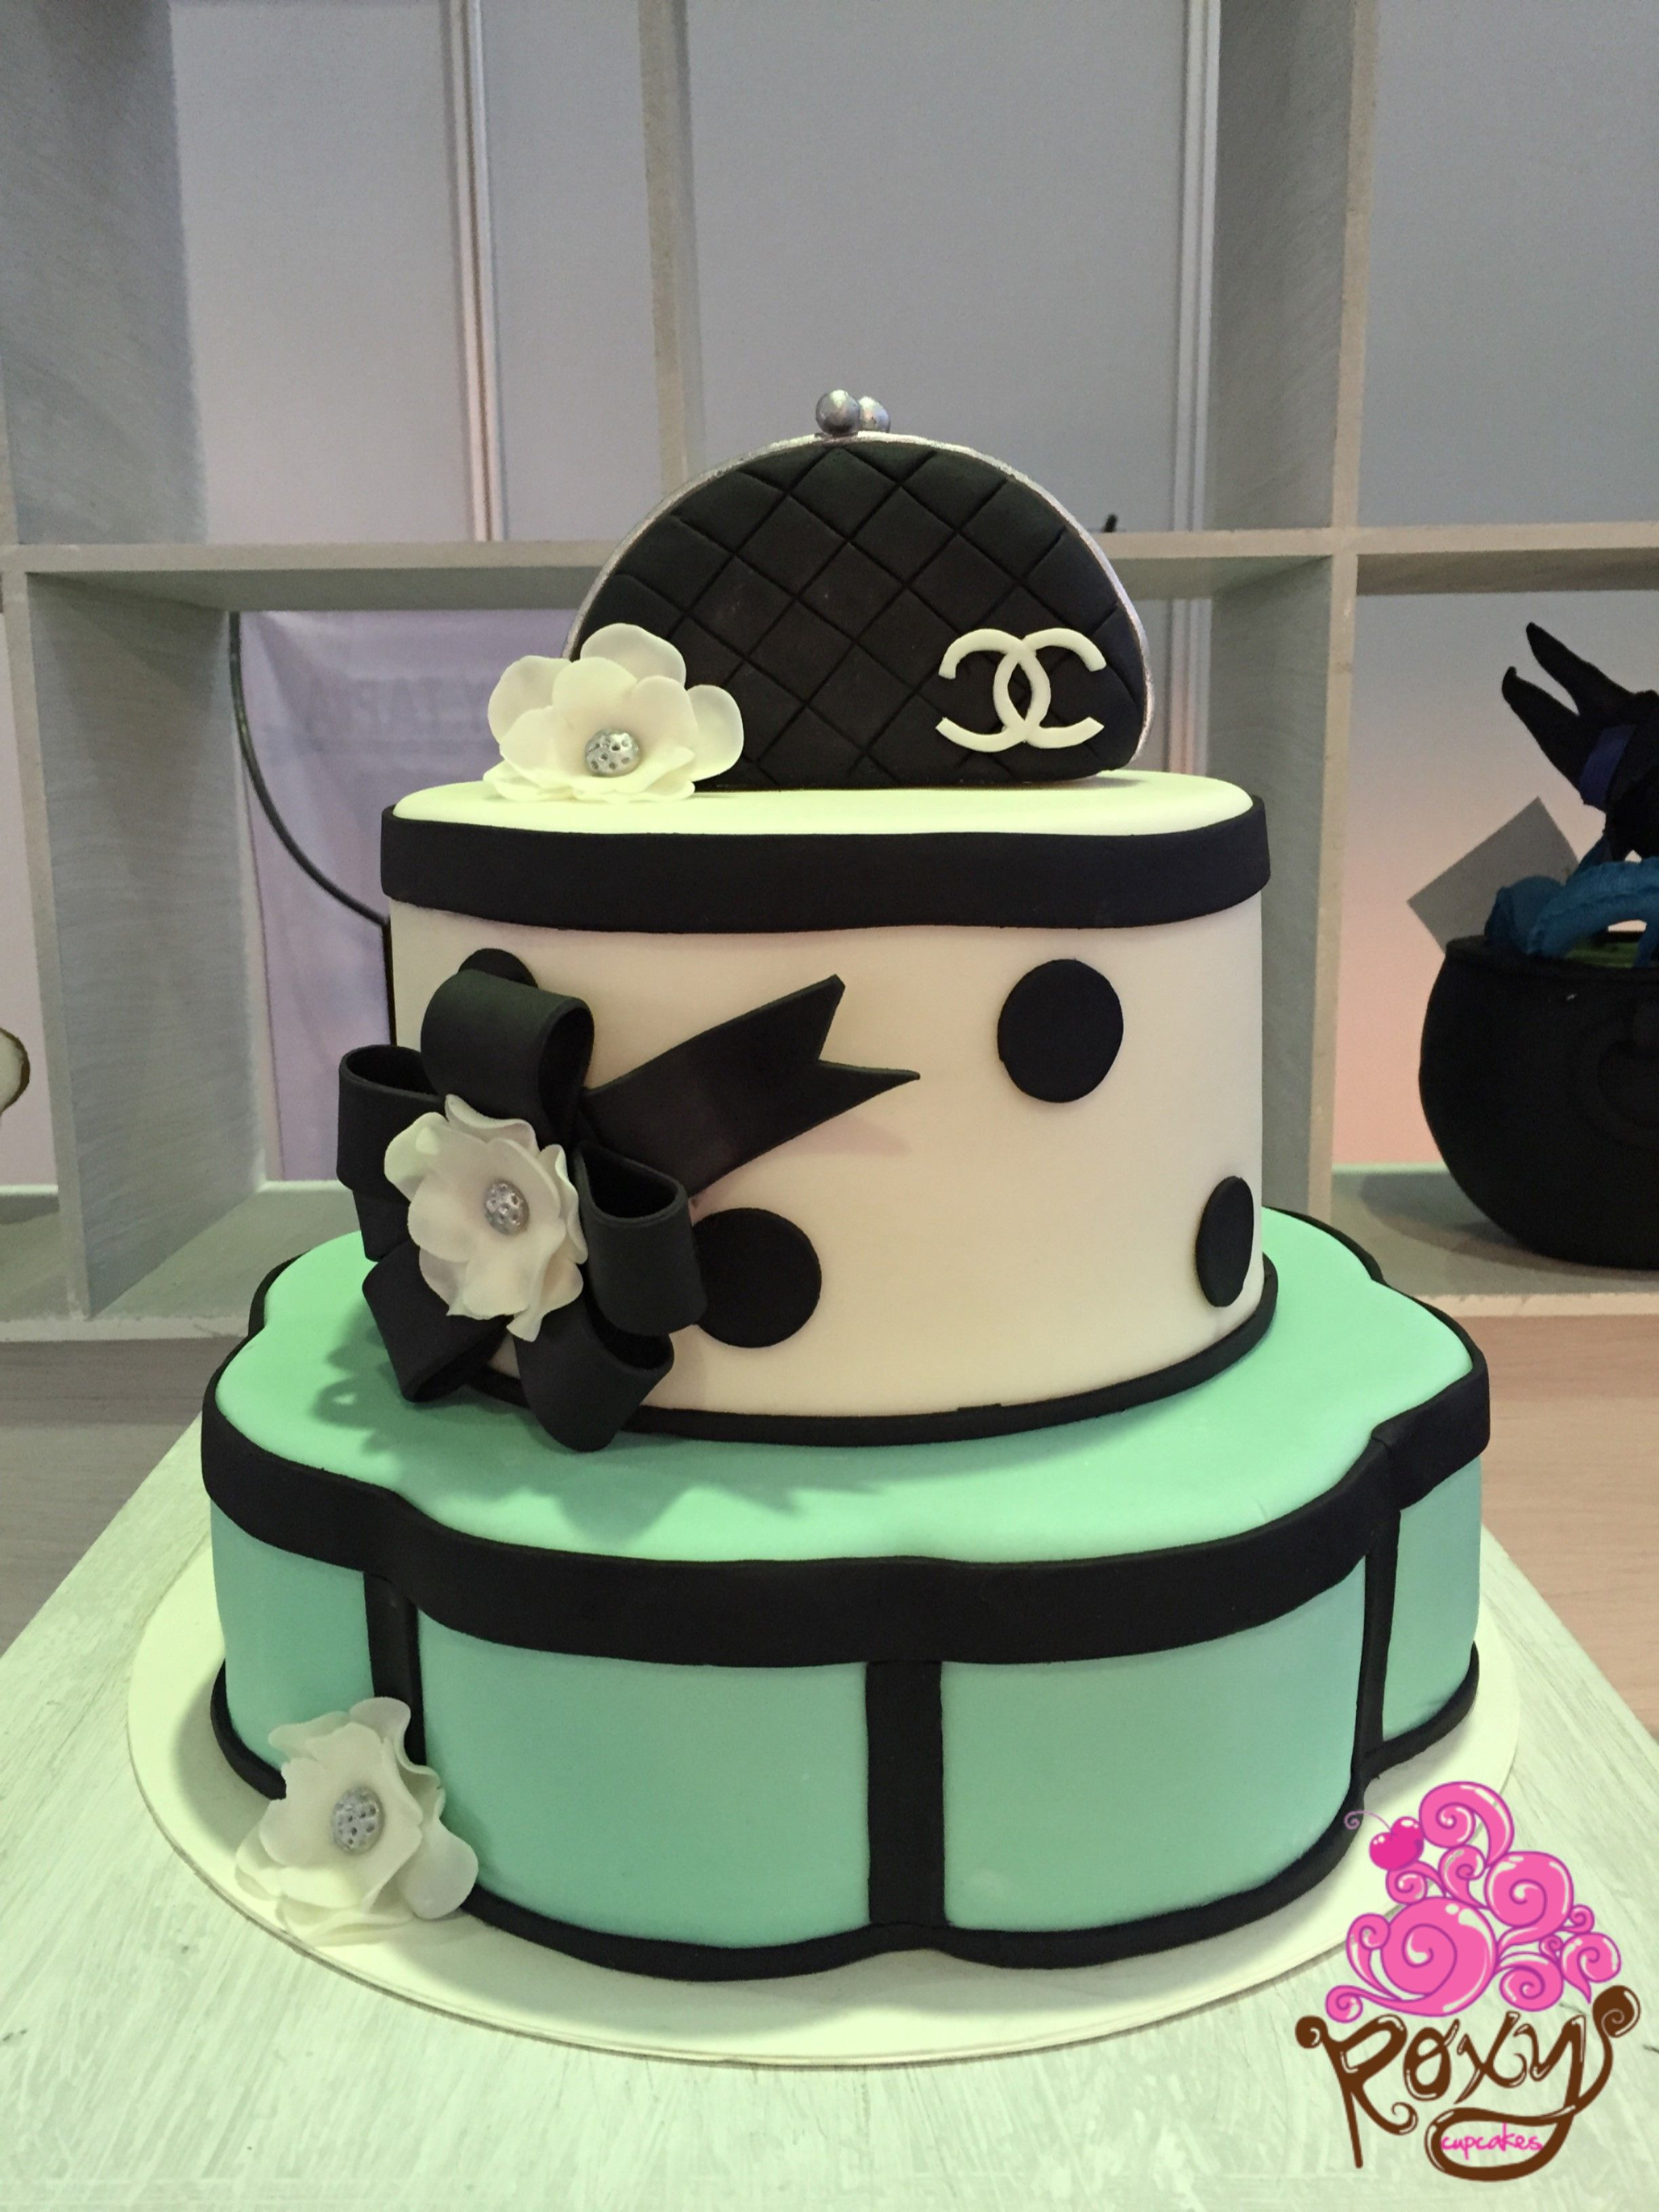 Chanel themed handbag birthday cake